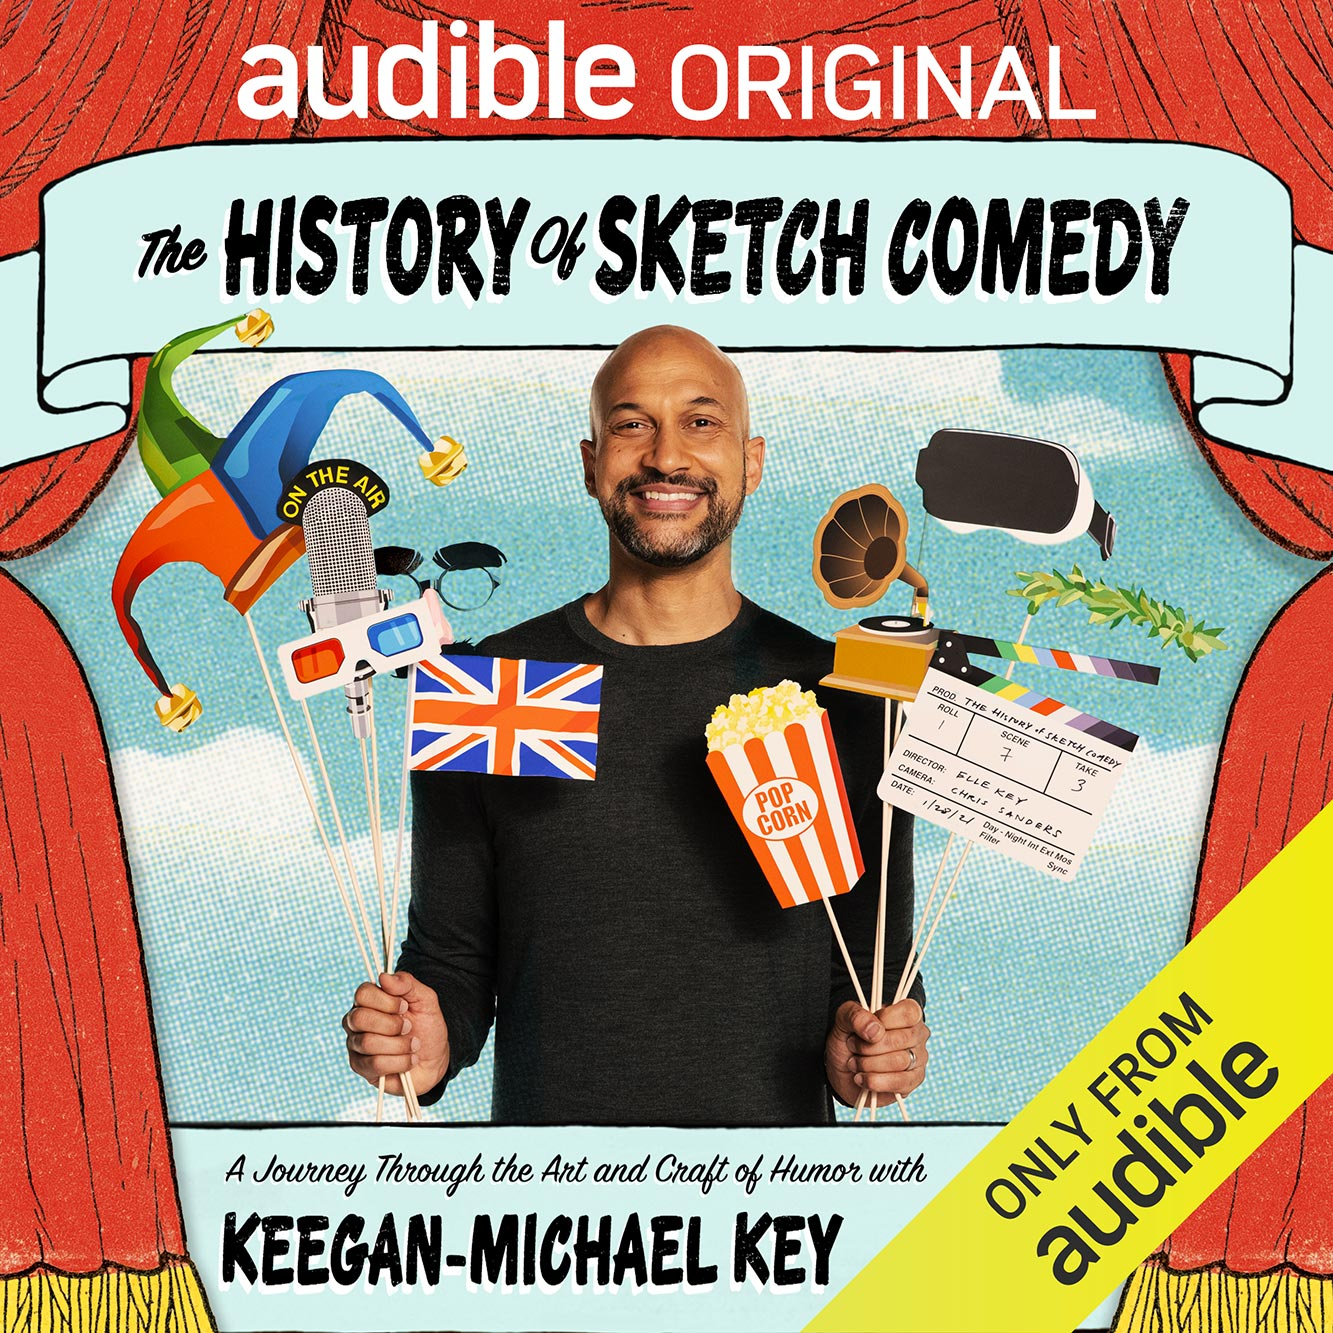 The History of Sketch Comedy podcast